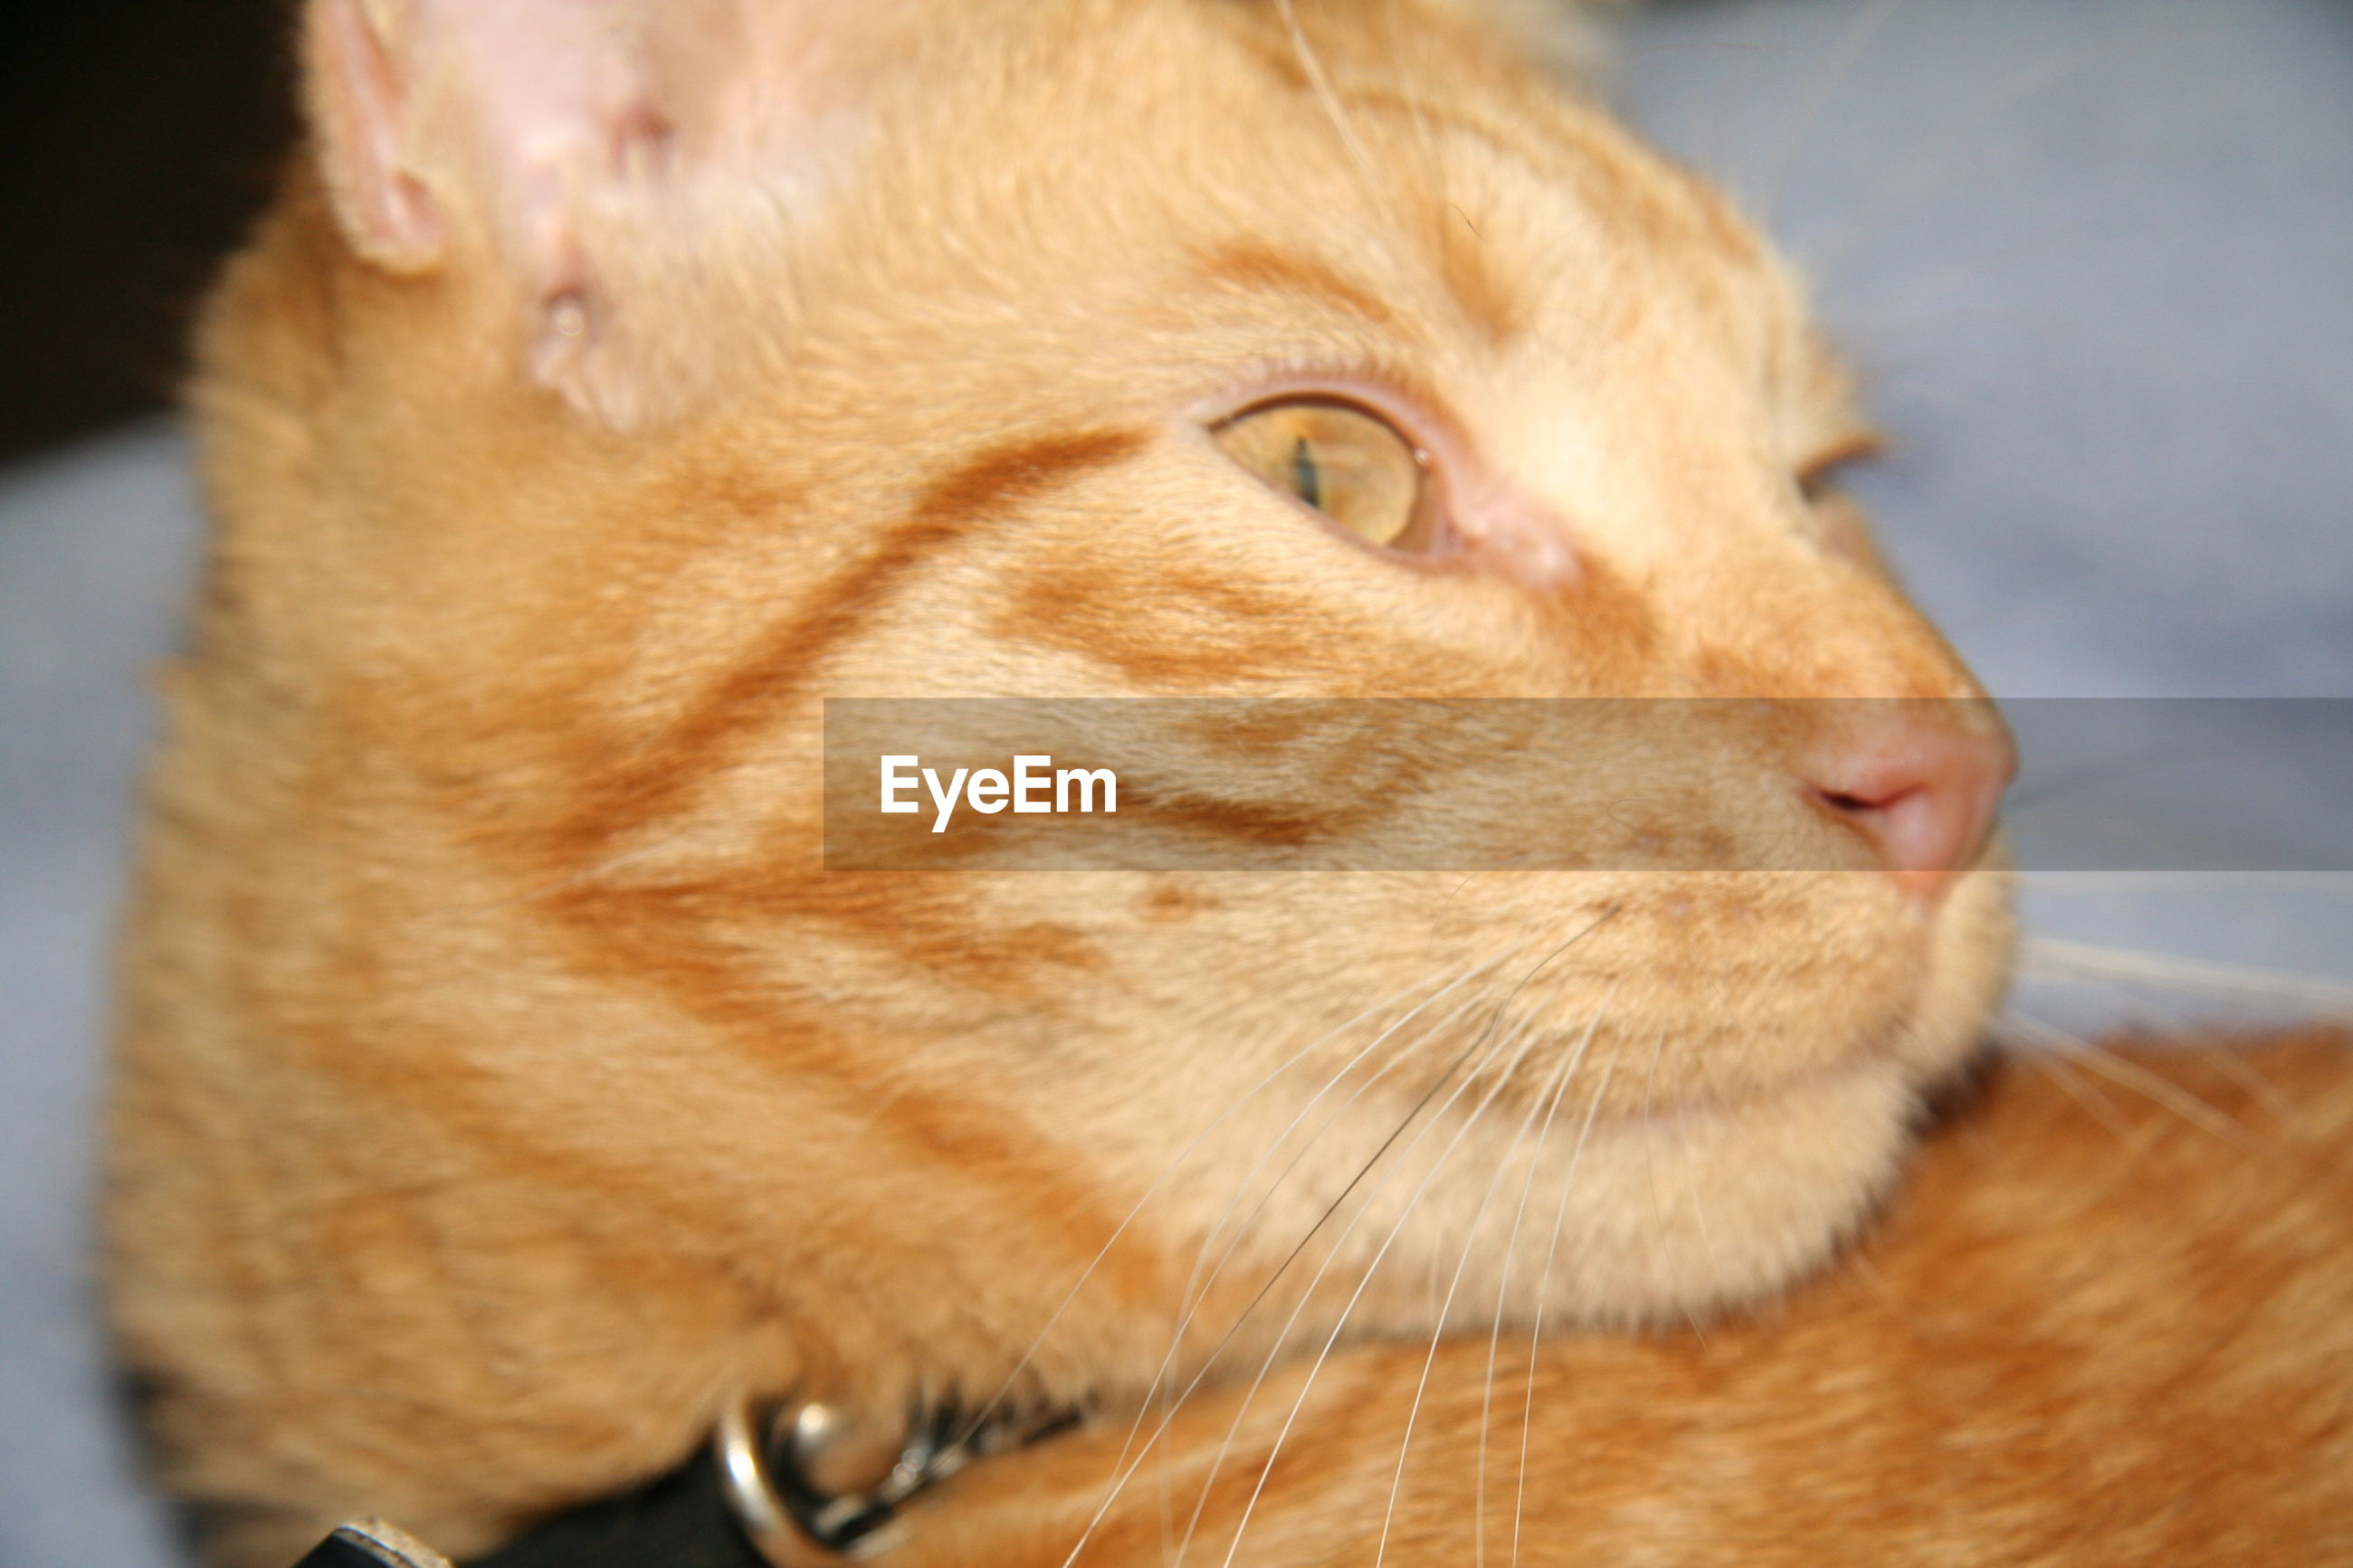 one animal, close-up, pets, cat, domestic animals, domestic cat, feline, whisker, looking away, mammal, alertness, front view, curiosity, selective focus, focus on foreground, animal nose, whiskers, animal eye, snout, zoology, no people, profile